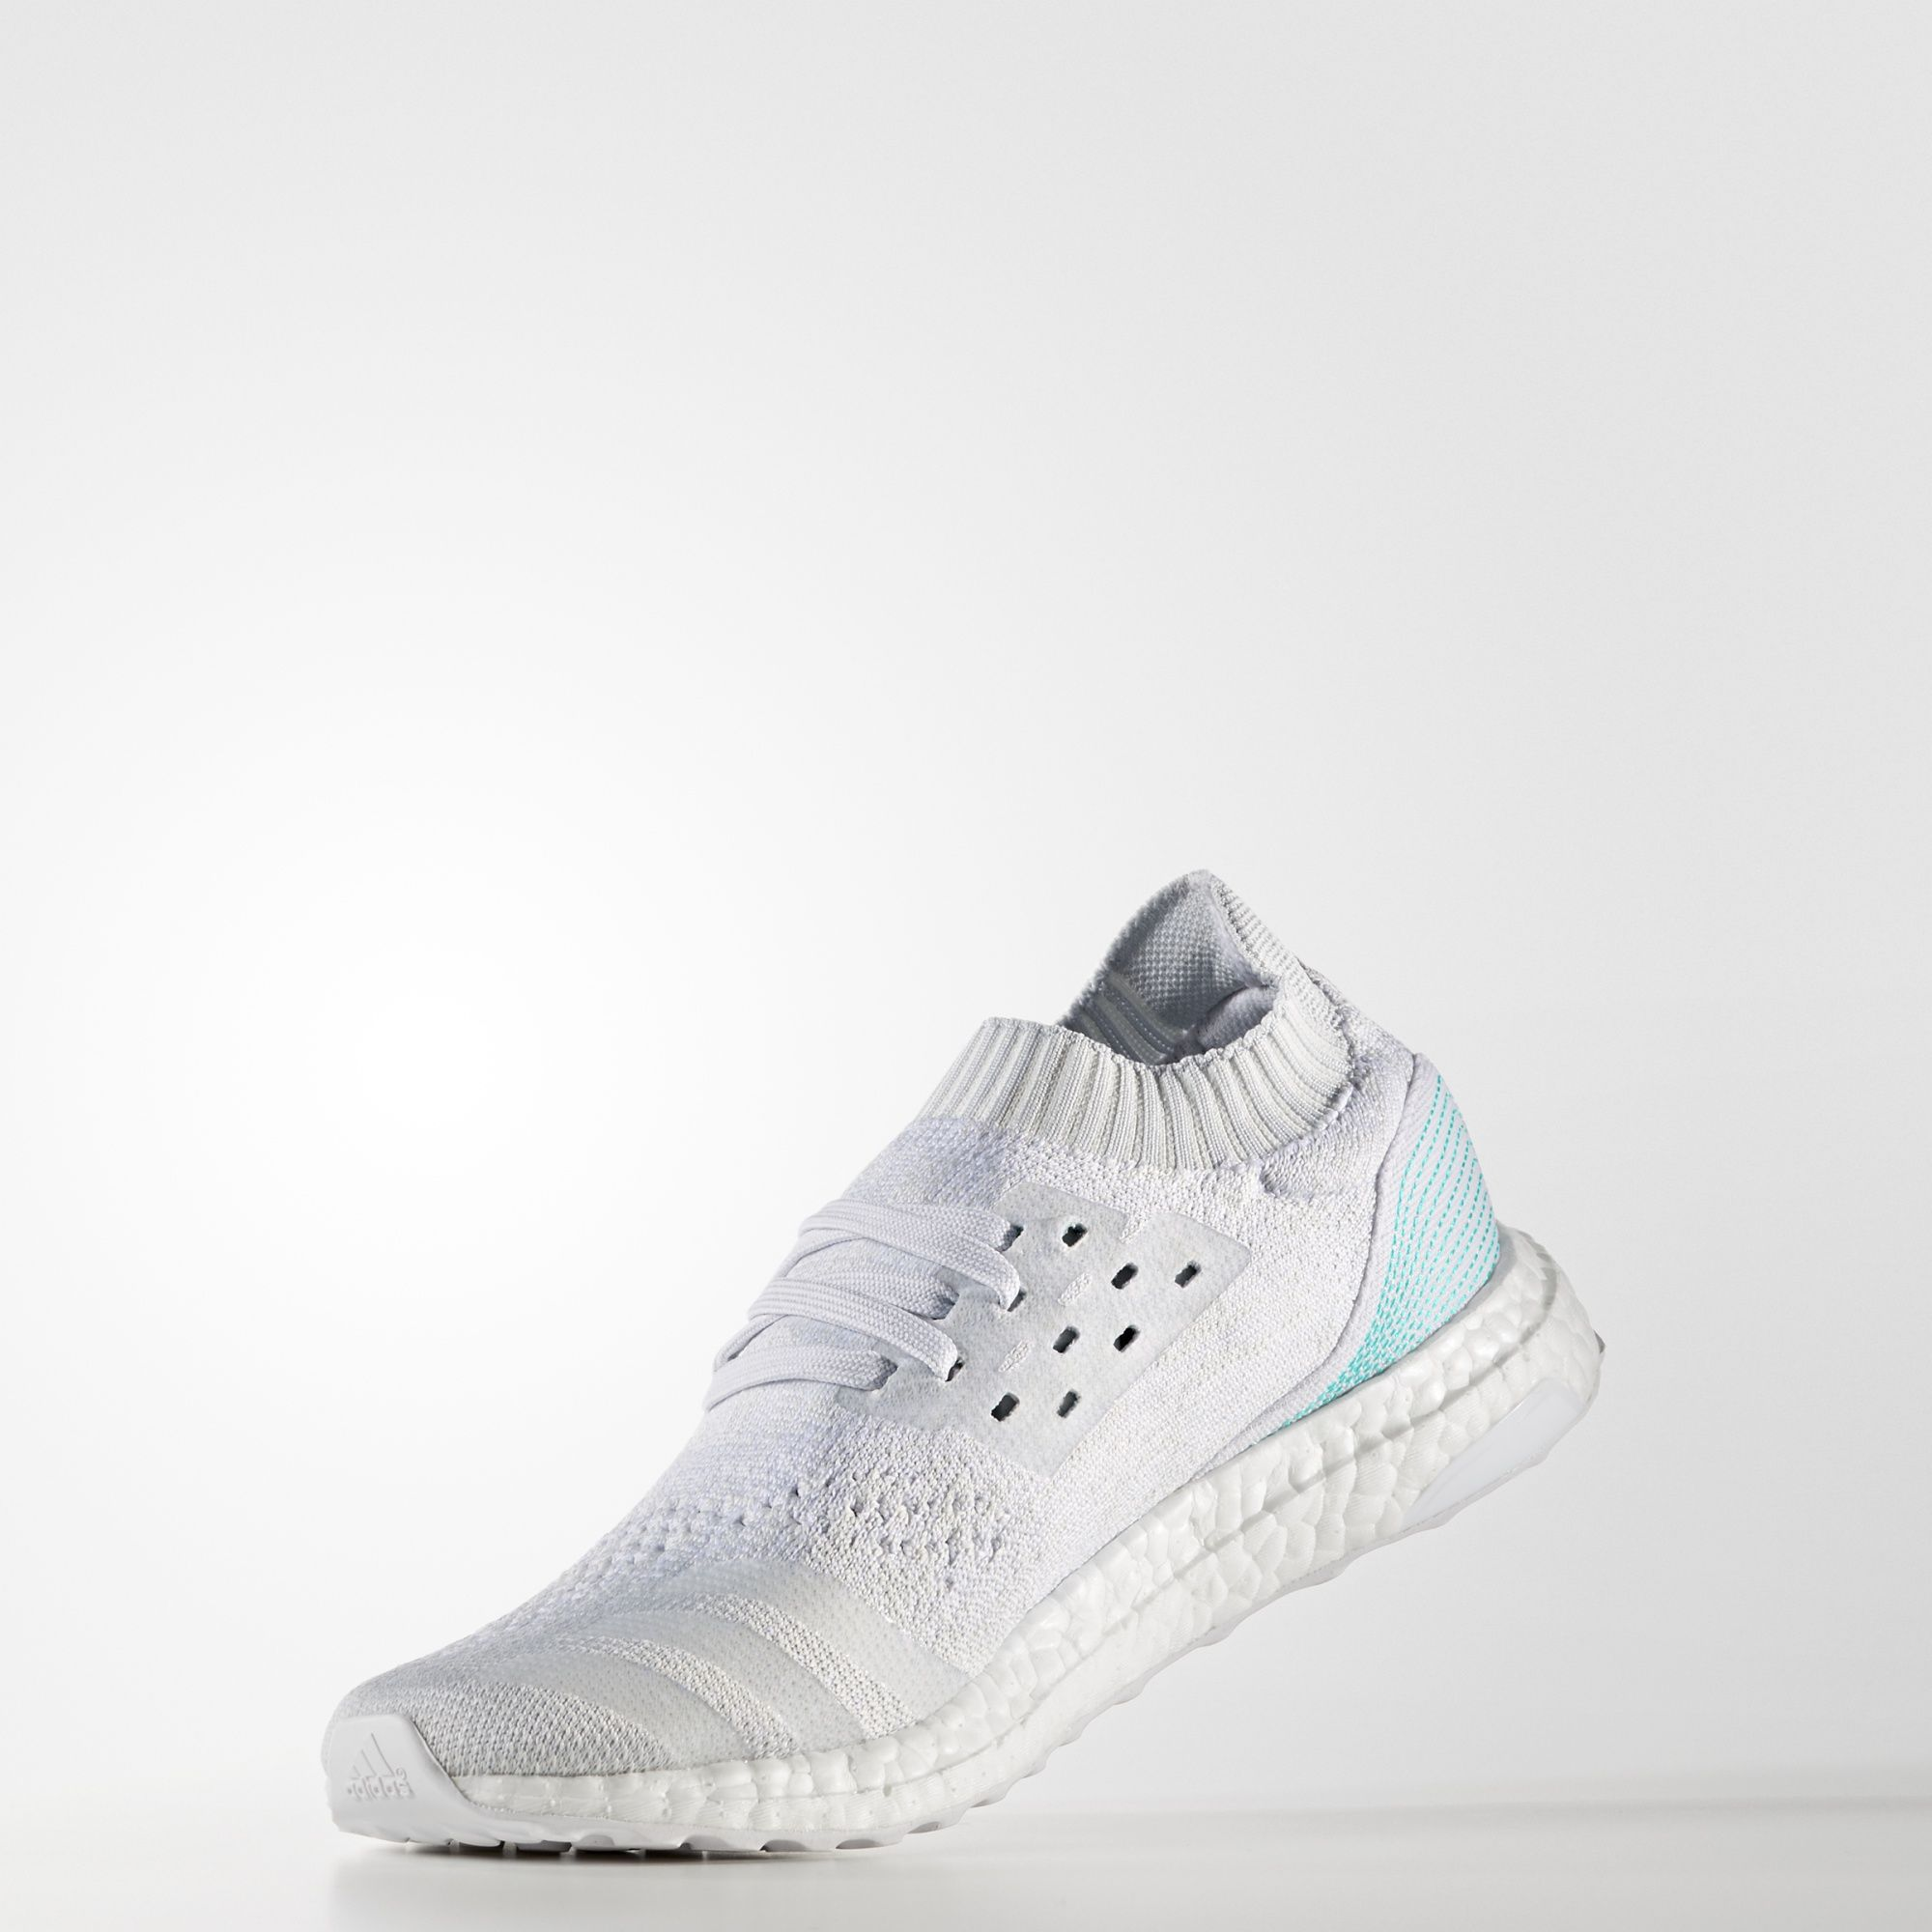 Parley x adidas Ultra Boost Uncaged Crystal White BB4073 2